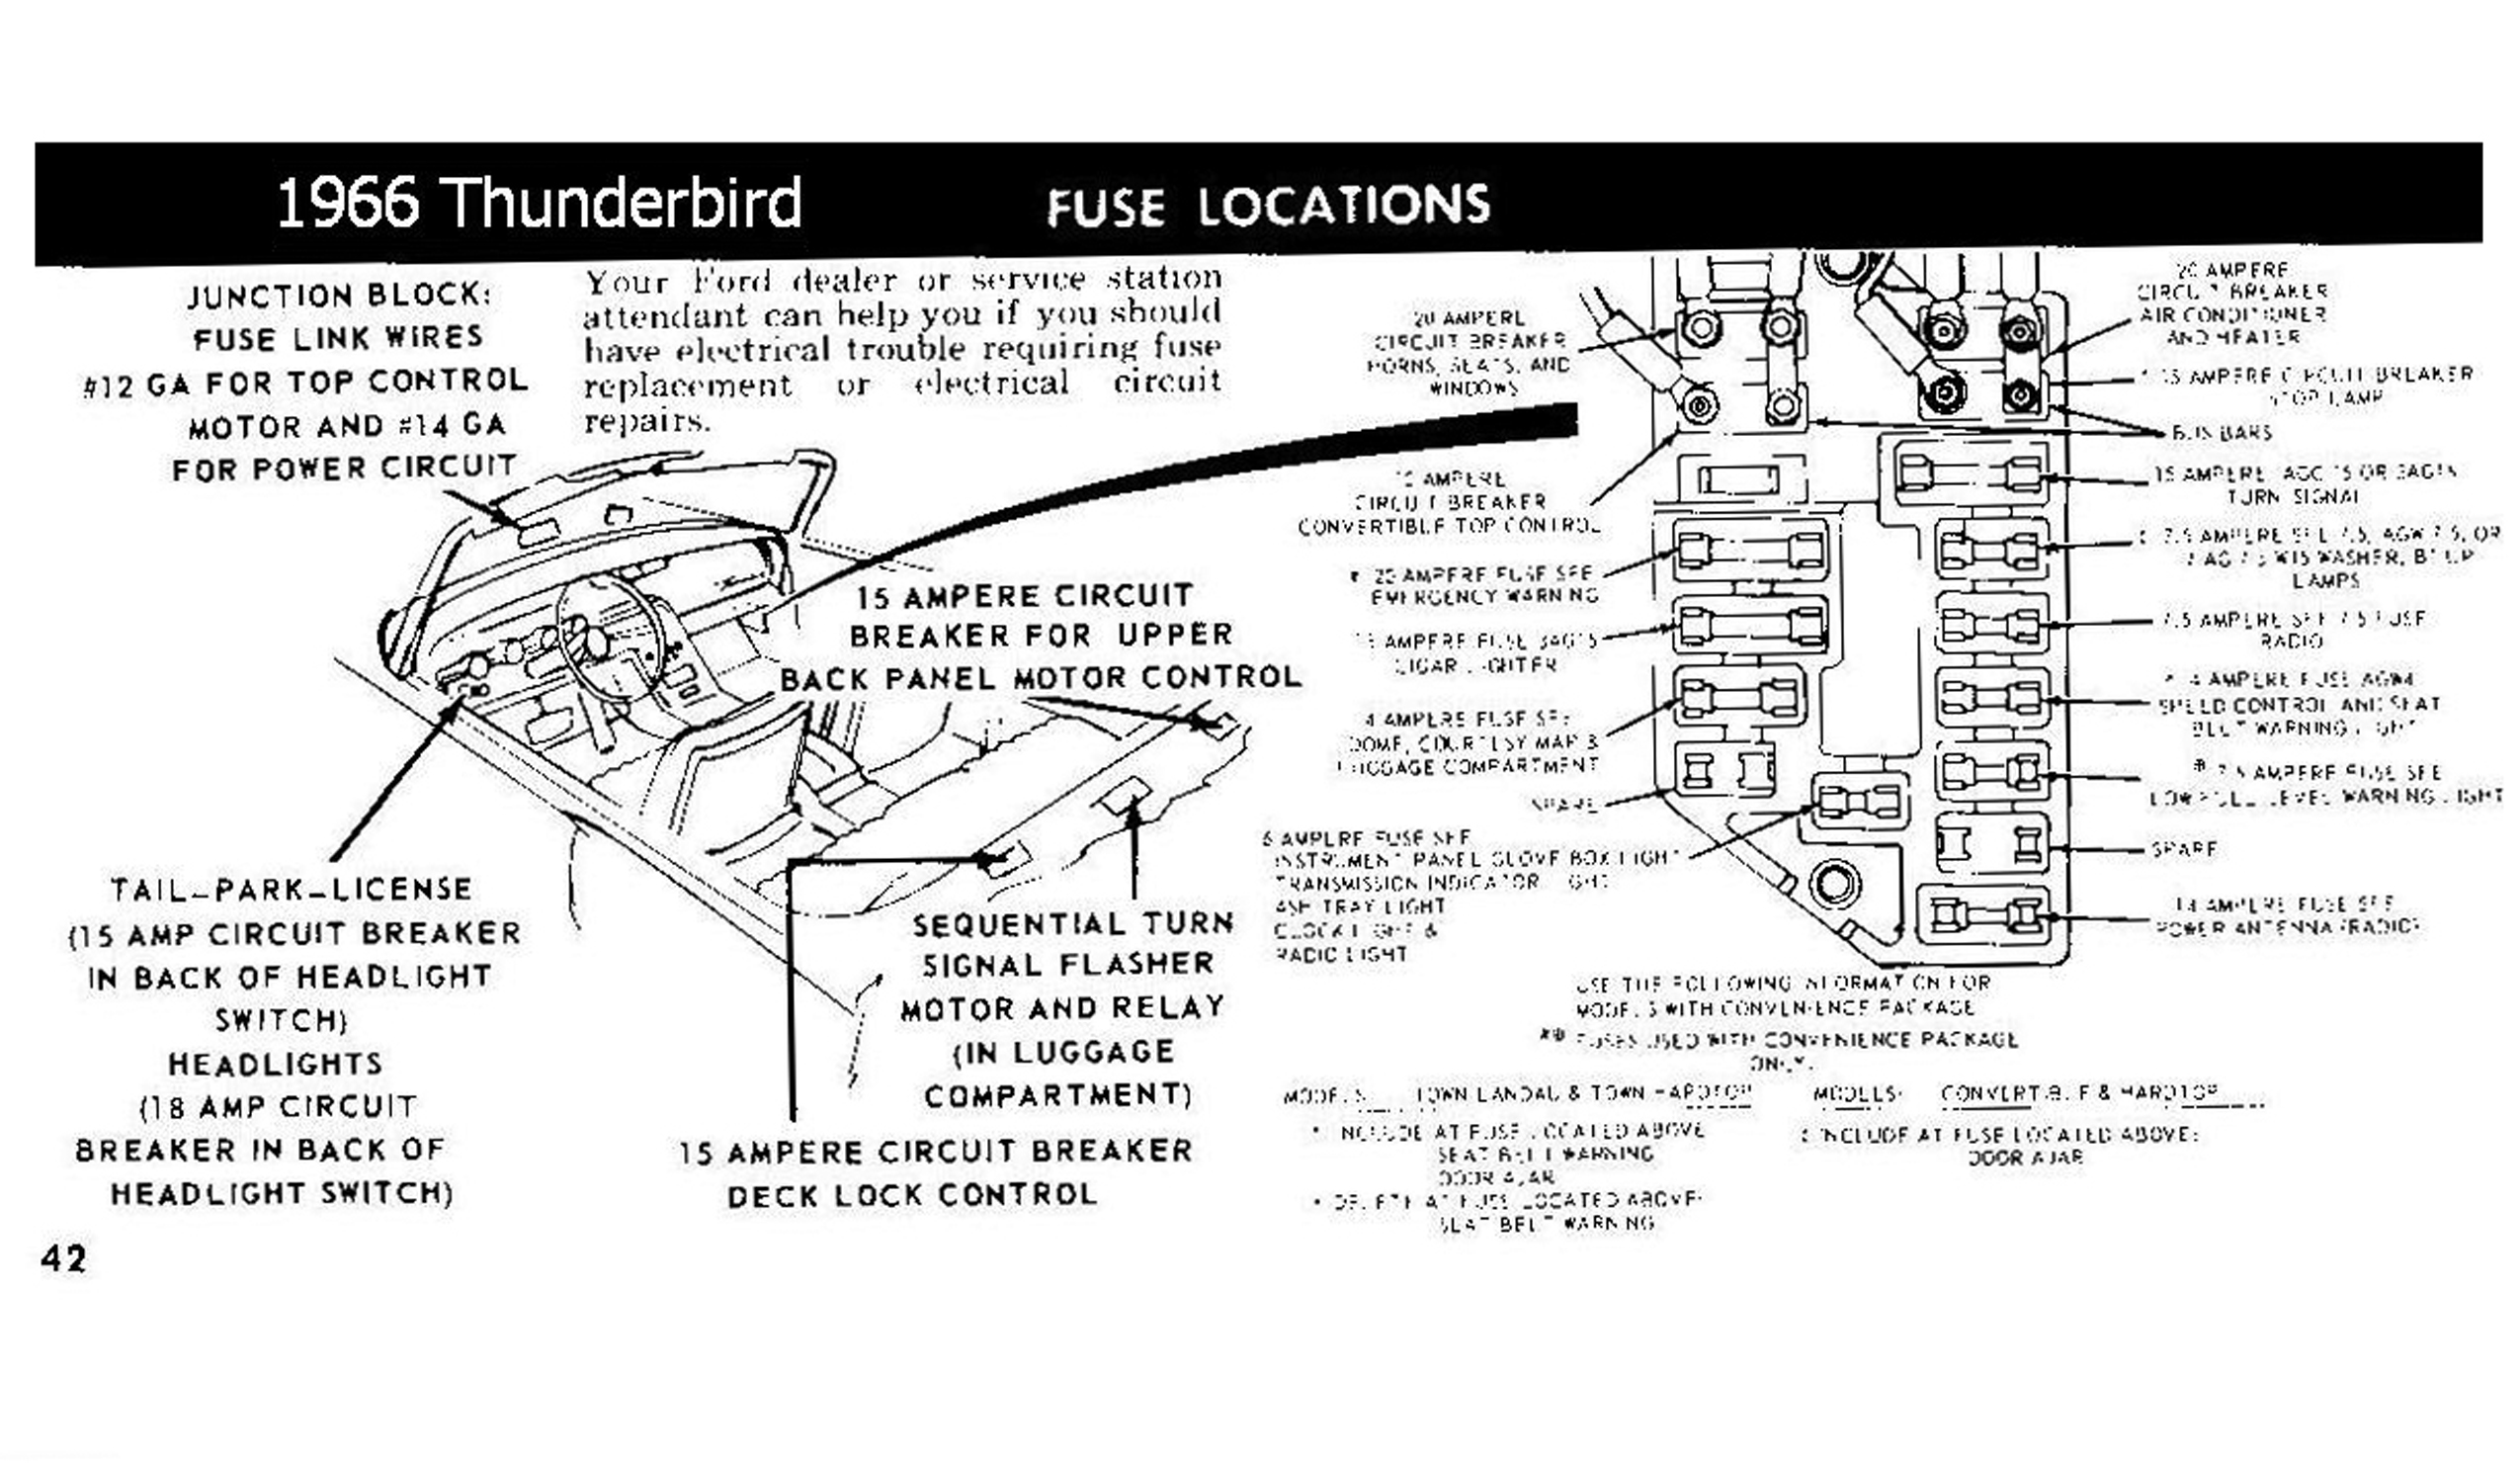 66TbirdFuseLocations 1958 68 ford electrical schematics  at aneh.co